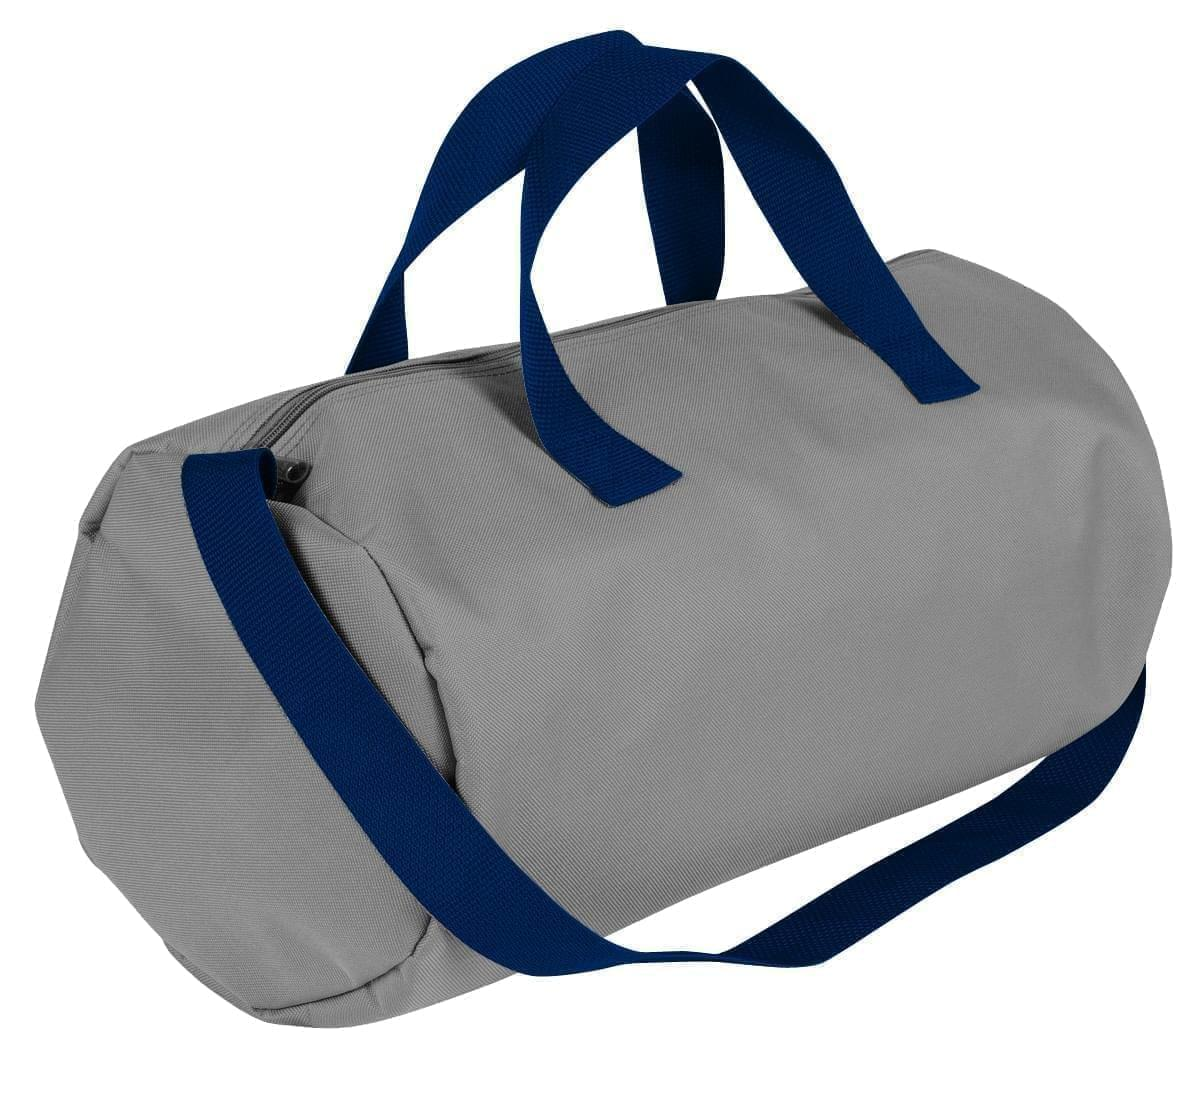 USA Made Nylon Poly Gym Roll Bags, Grey-Navy, ROCX31AA1Z